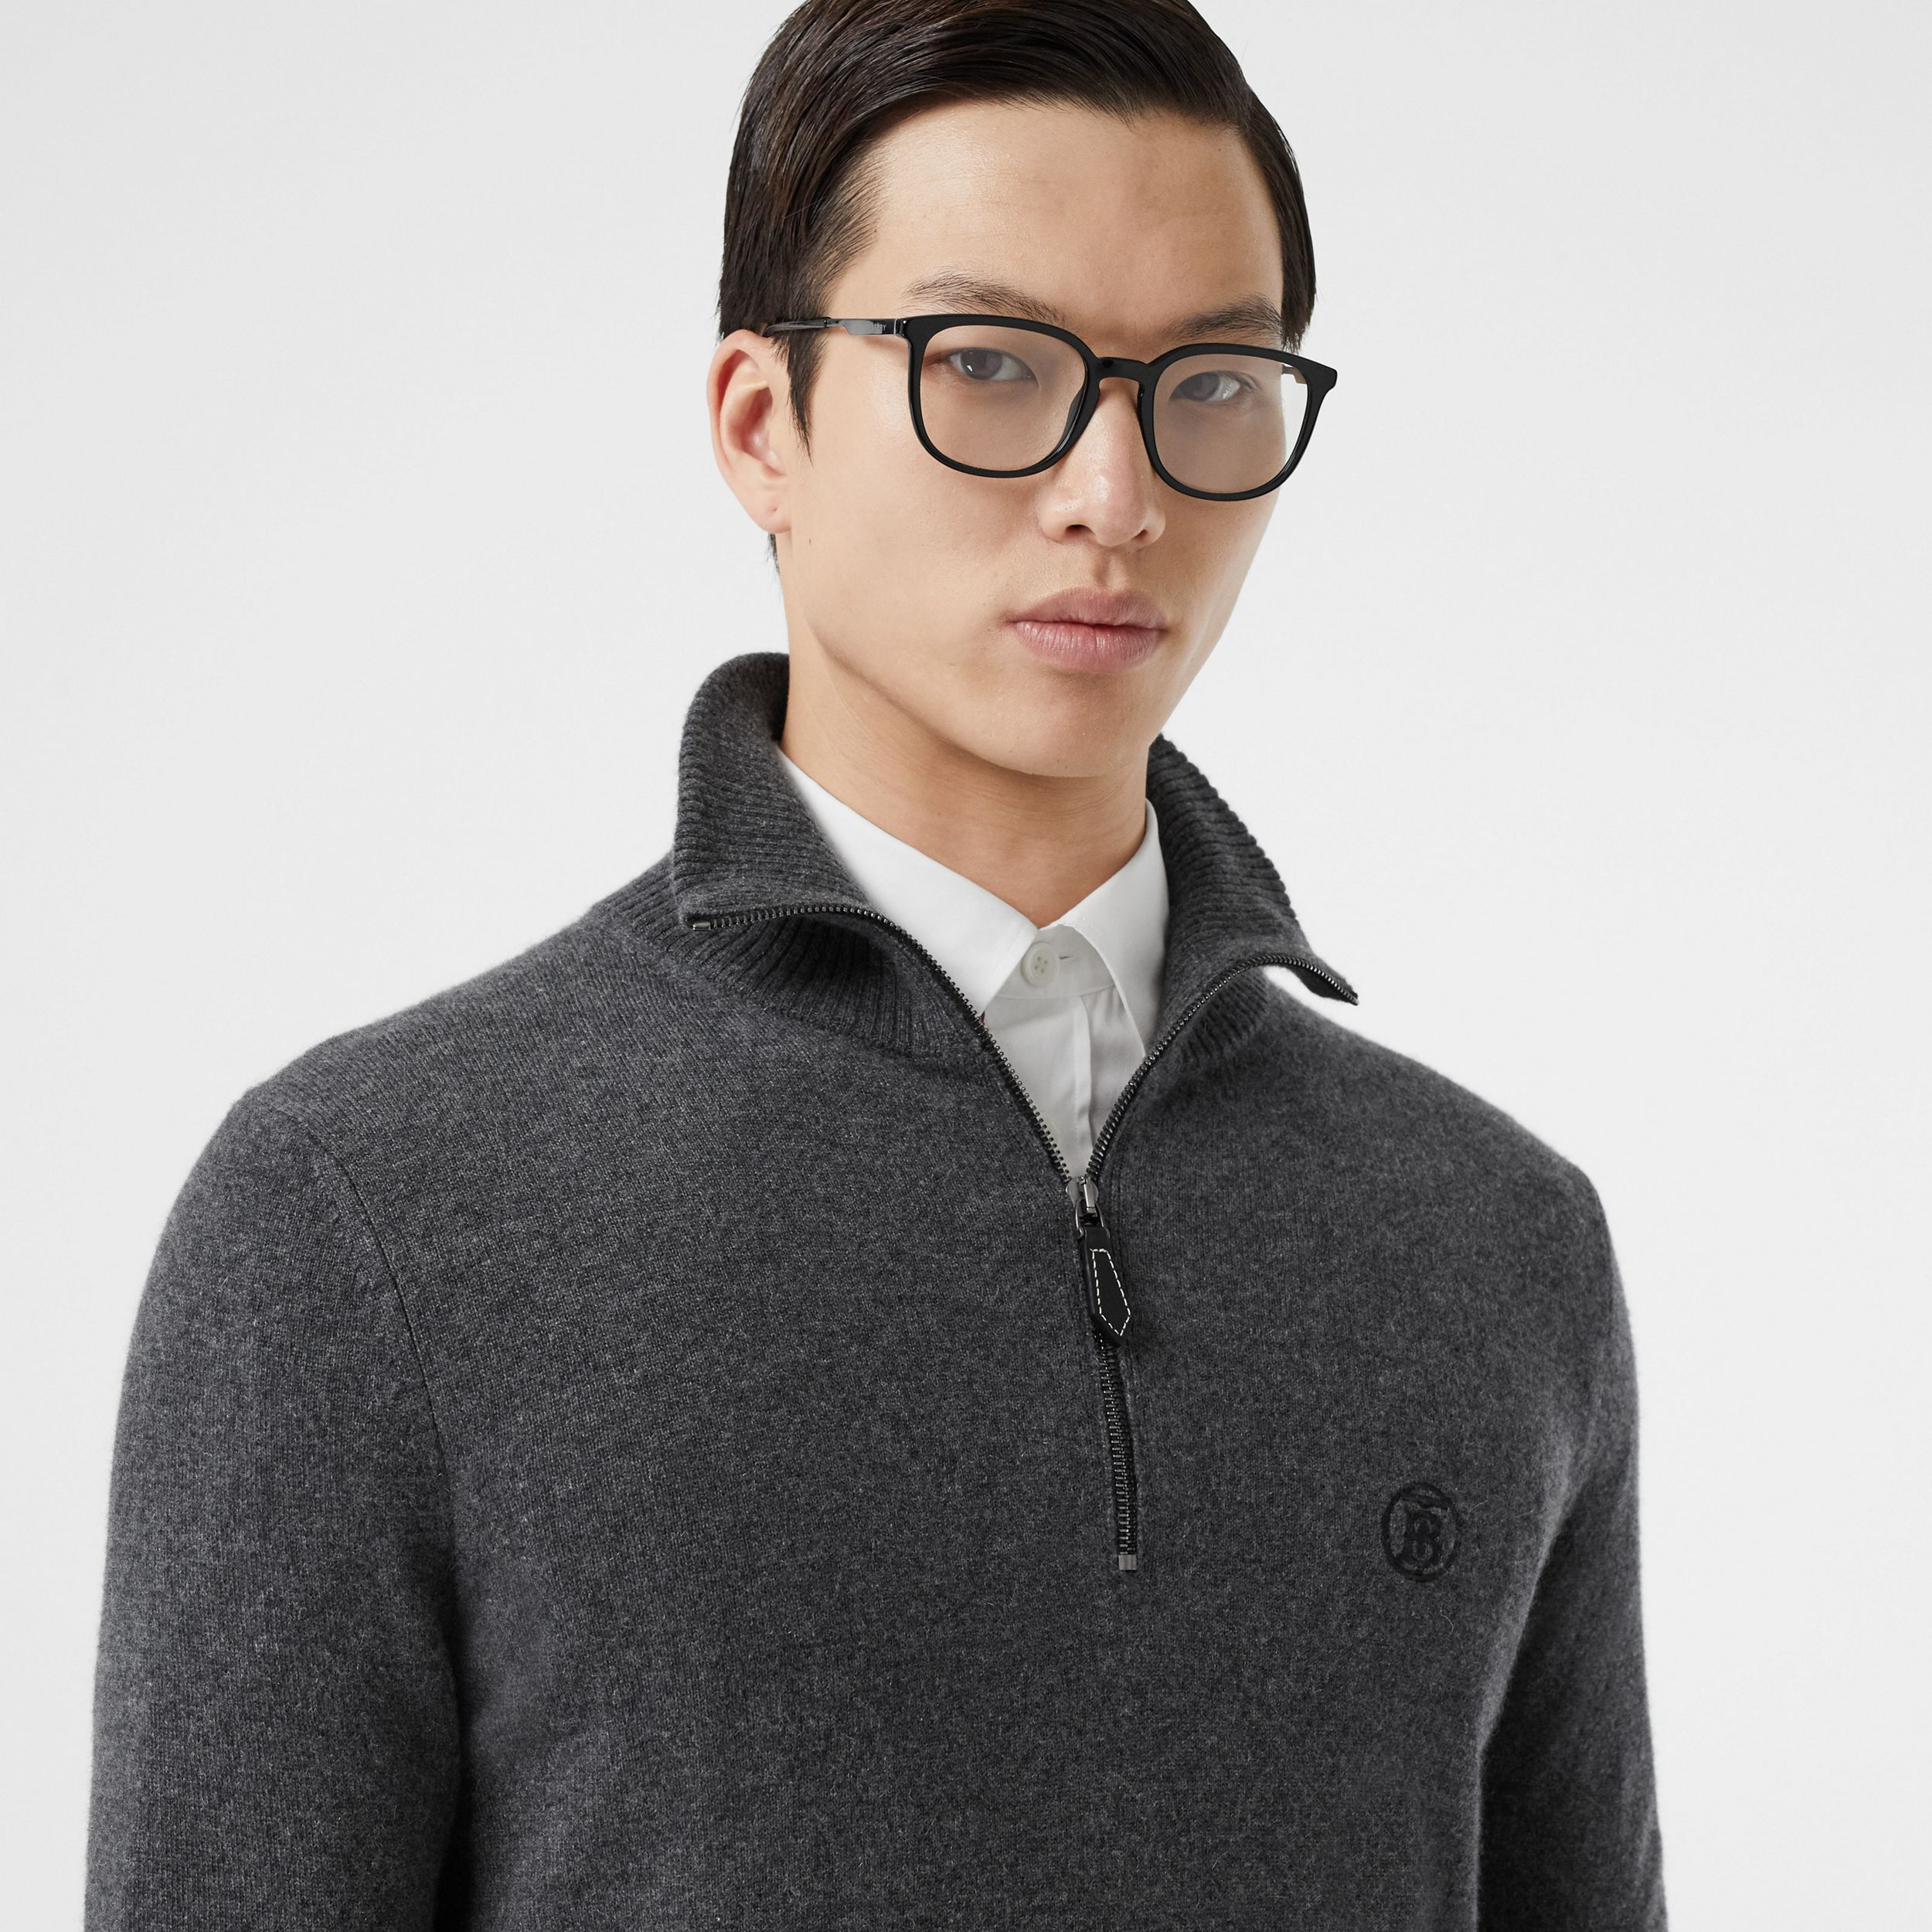 Monogram Motif Cashmere Funnel Neck Sweater in Steel Grey - Men | Burberry - 2